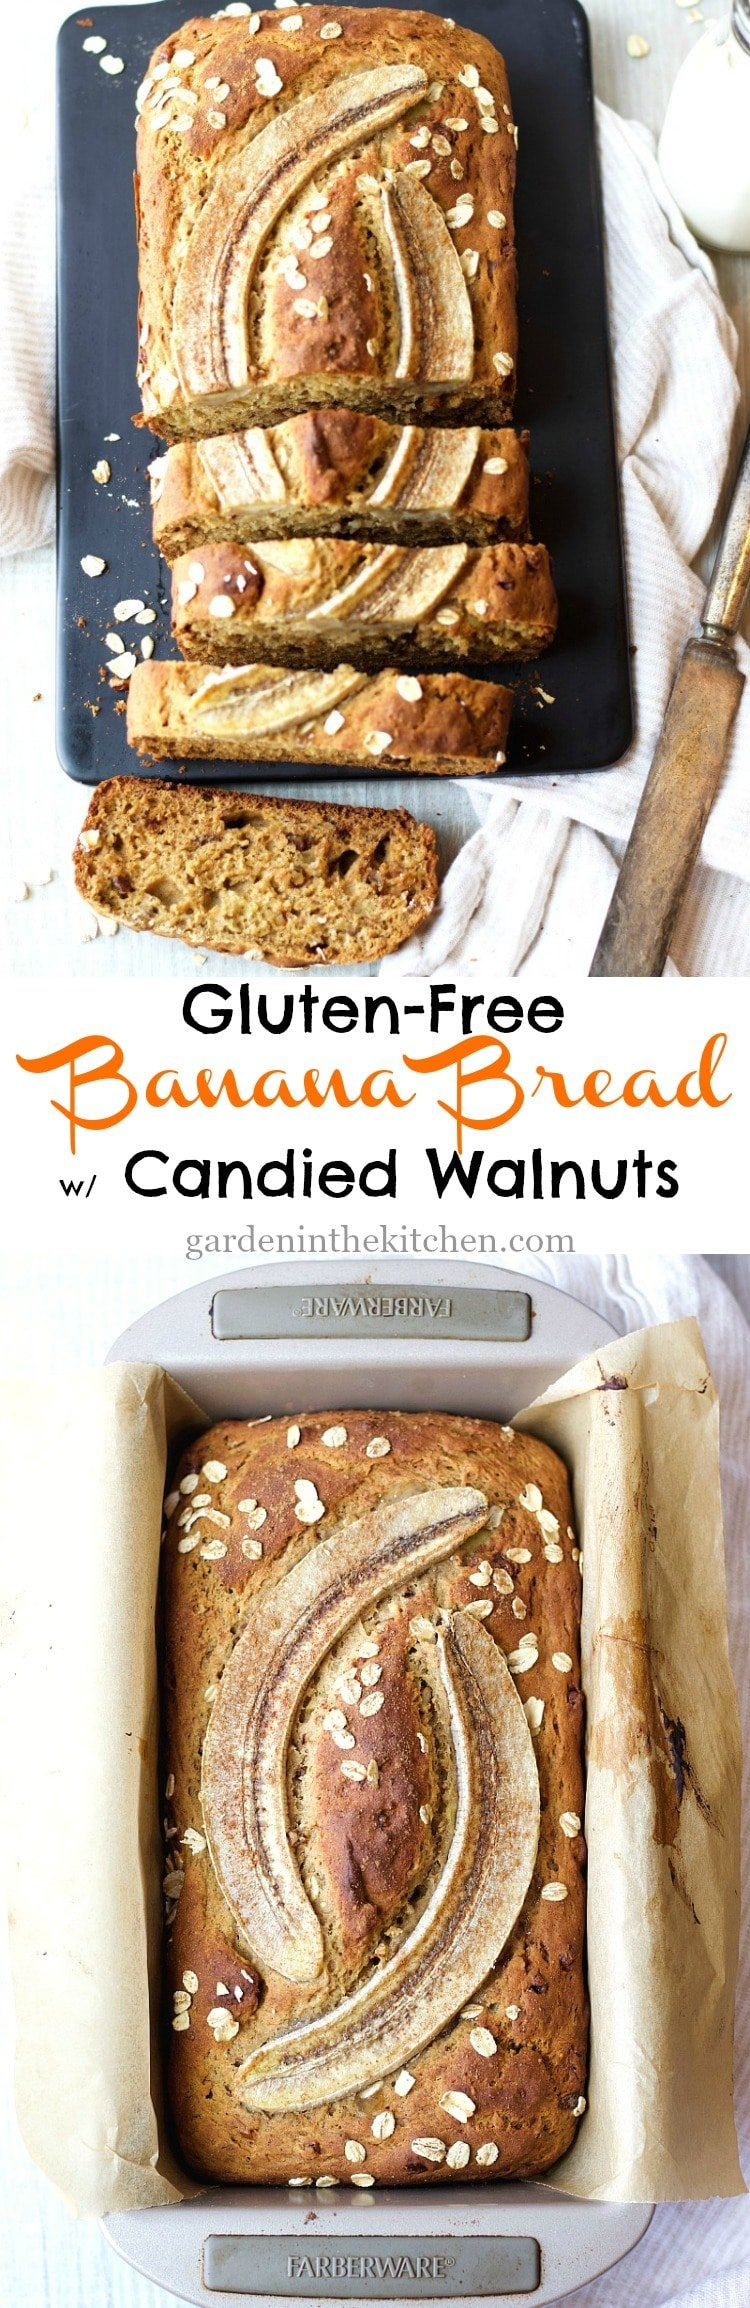 Gluten-Free Banana Bread with Candied Walnuts